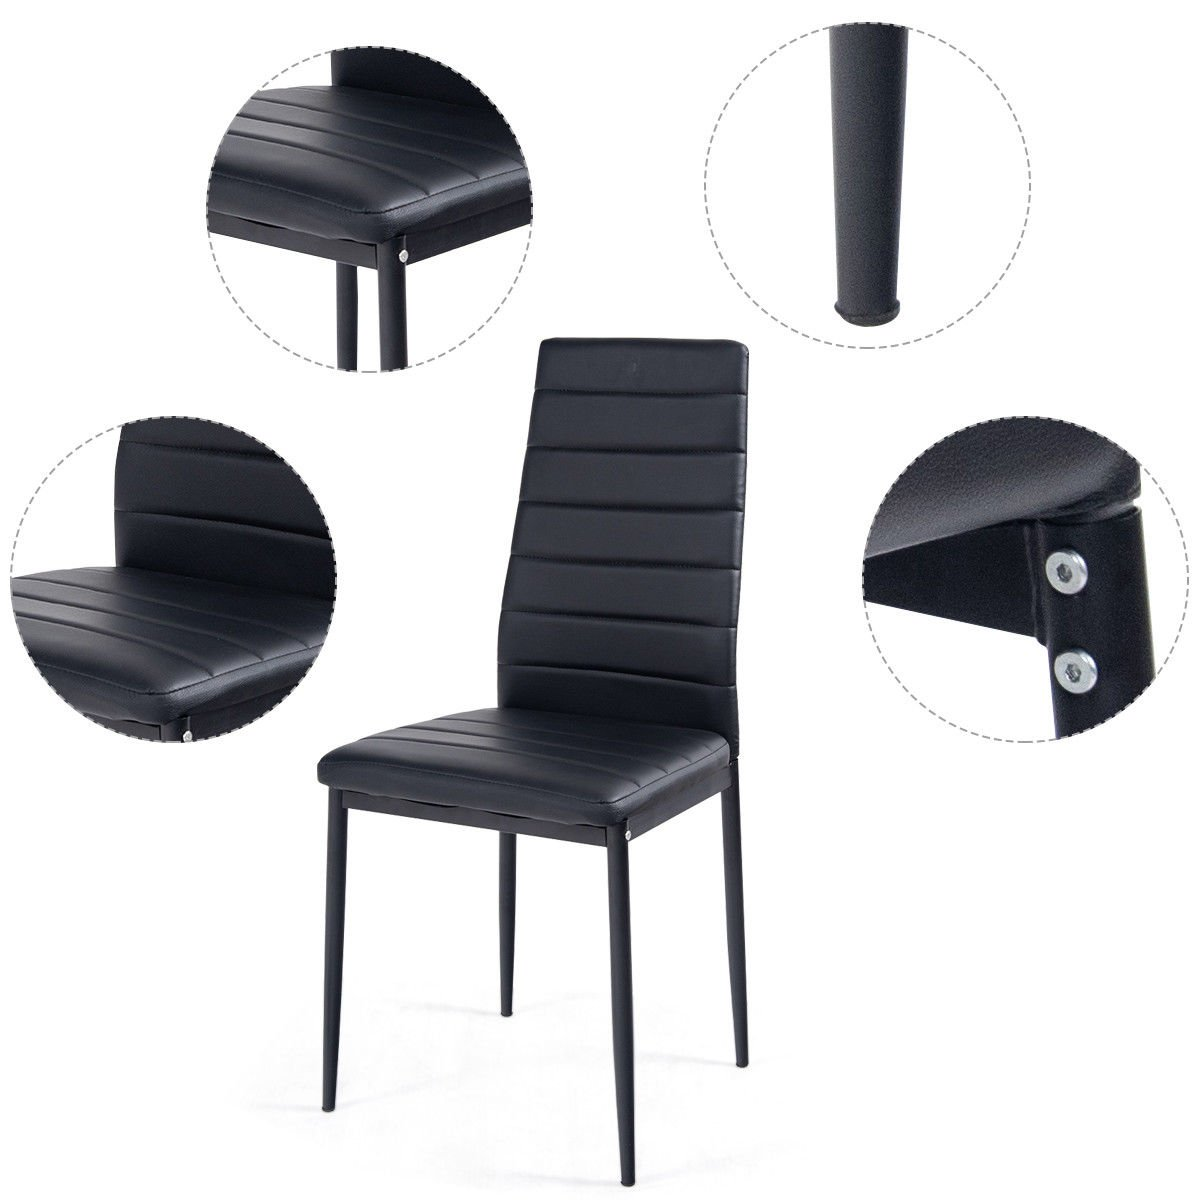 Tangkula 5 PCS Dining Table Set Modern Tempered Glass Top and PVC Leather Chair w/4 Chairs Dining Room Kitchen Furniture (Black) by Tangkula (Image #5)